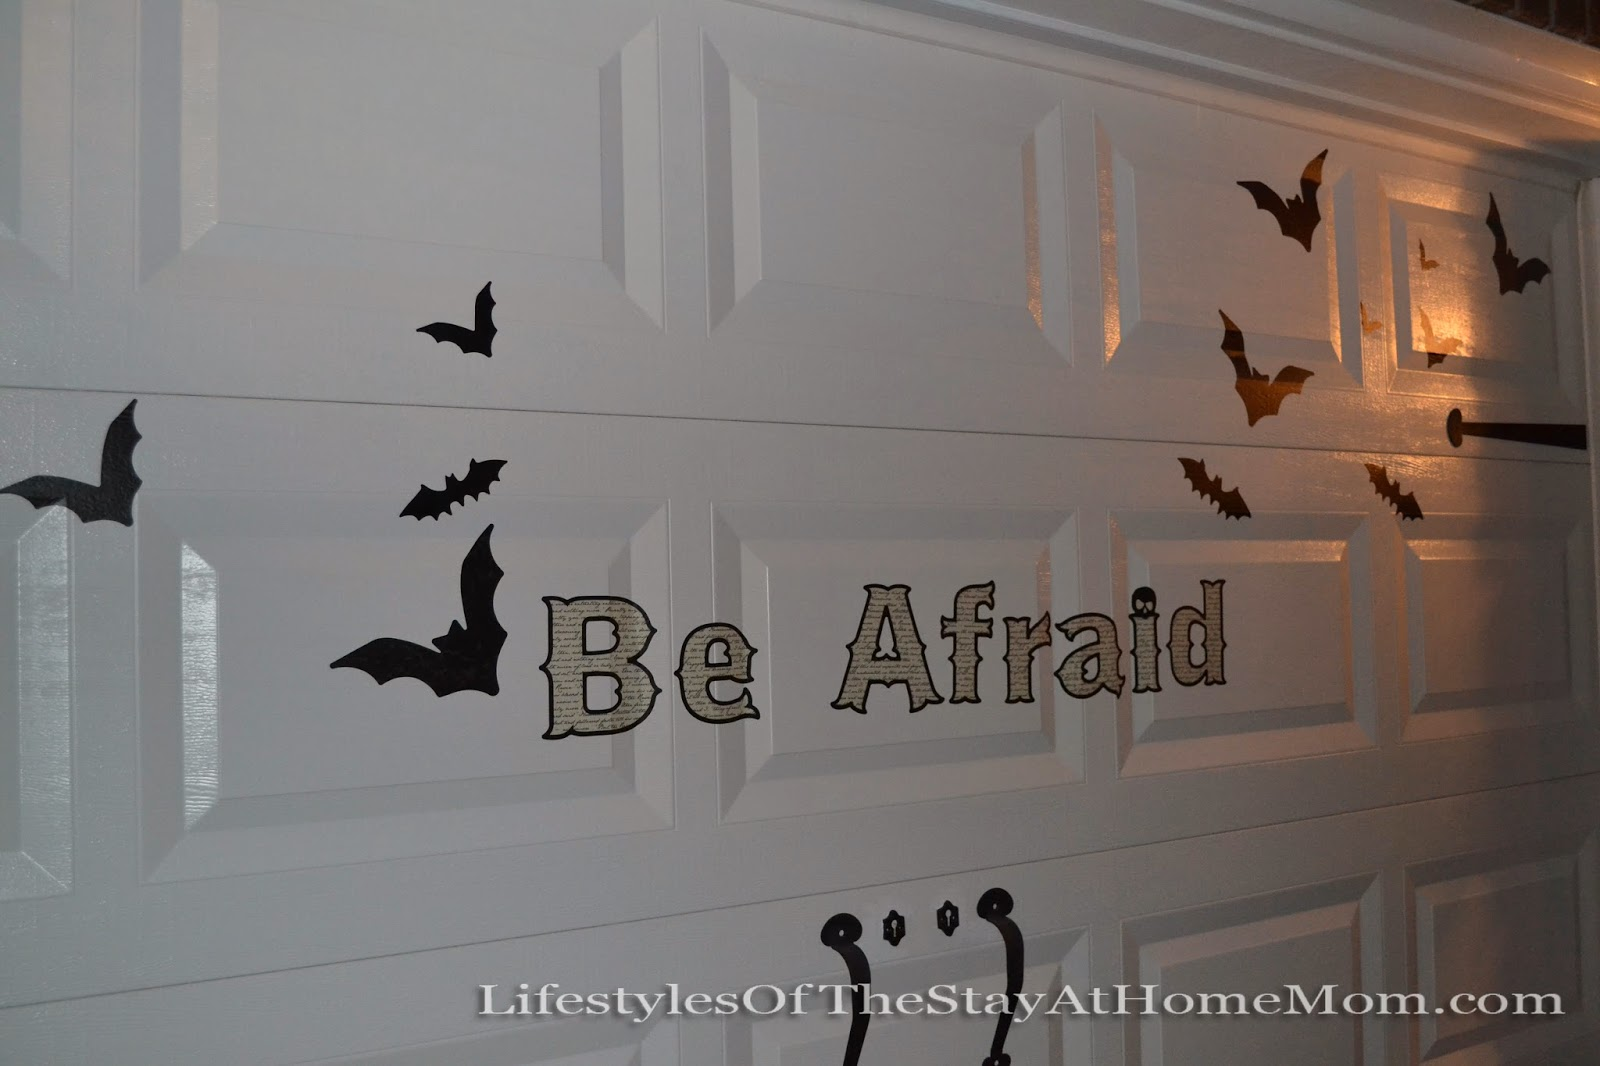 Halloween garage door decals - The Decals I Found At Lowes Of All Places They Are Part Of A Large Decal Set I Placed On Our Garage